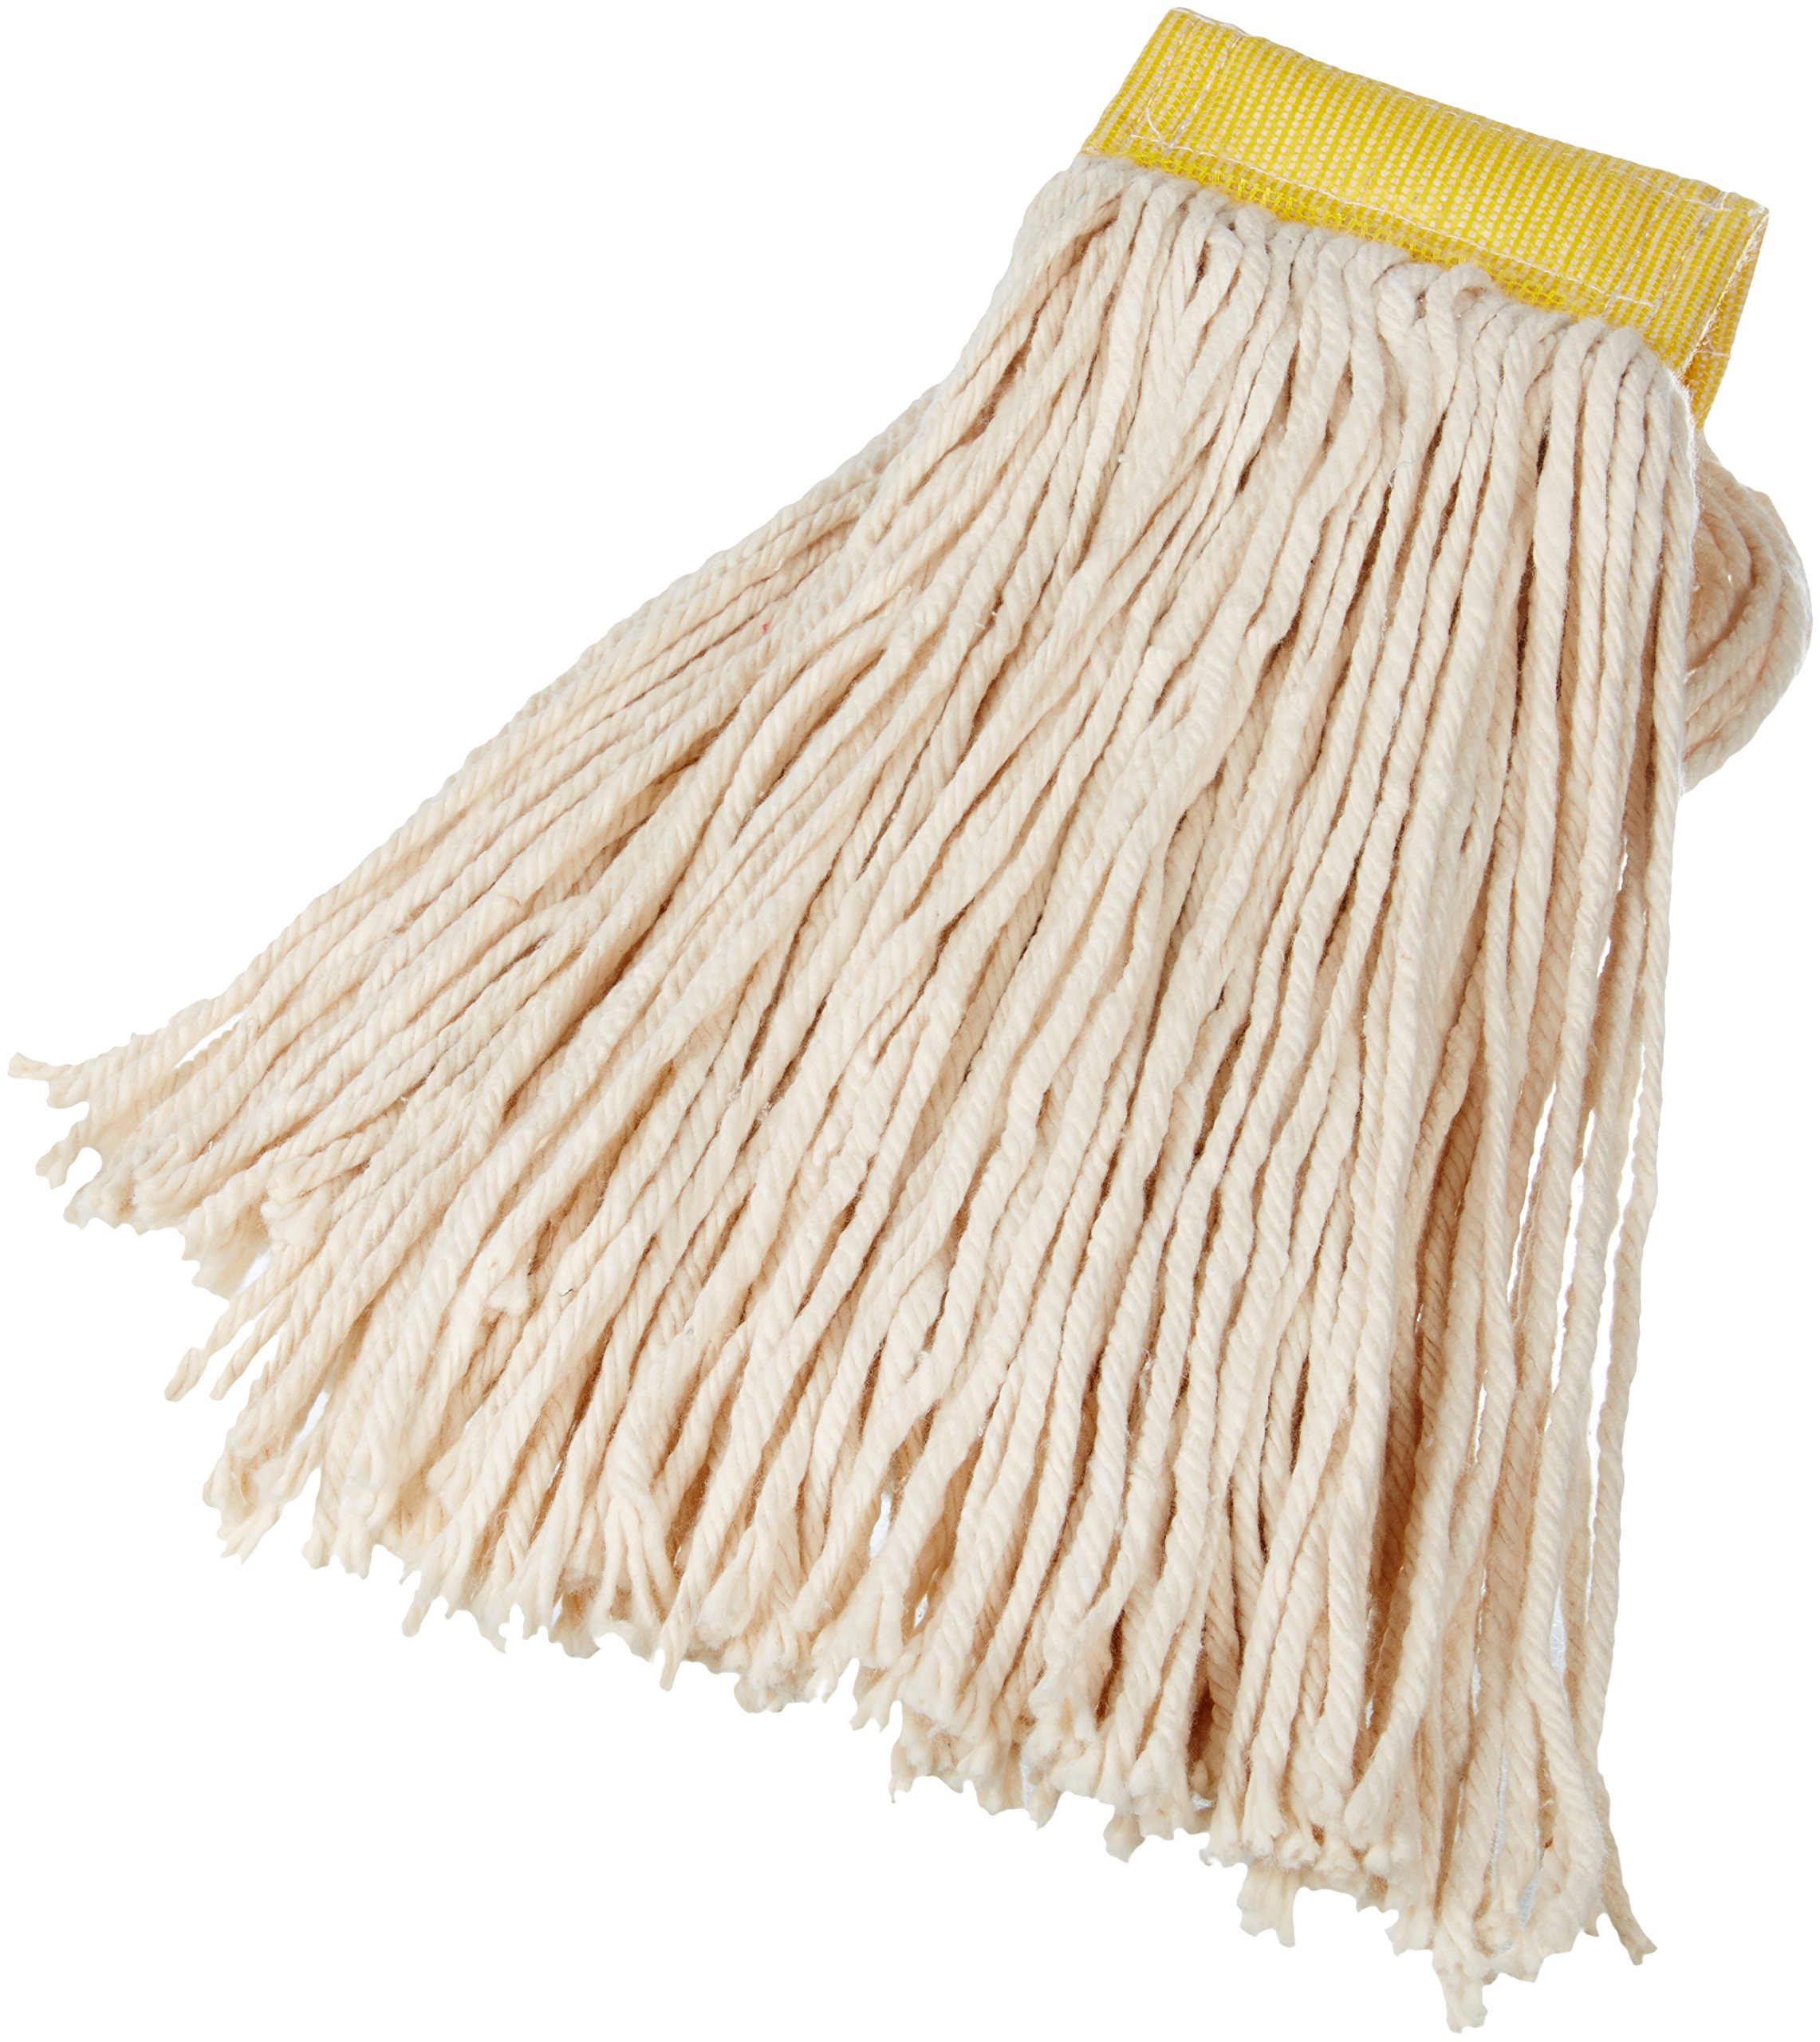 AmazonBasics Cut-End Cotton Mop Head, 5-Inch Headband, Large, White - 6-Pack